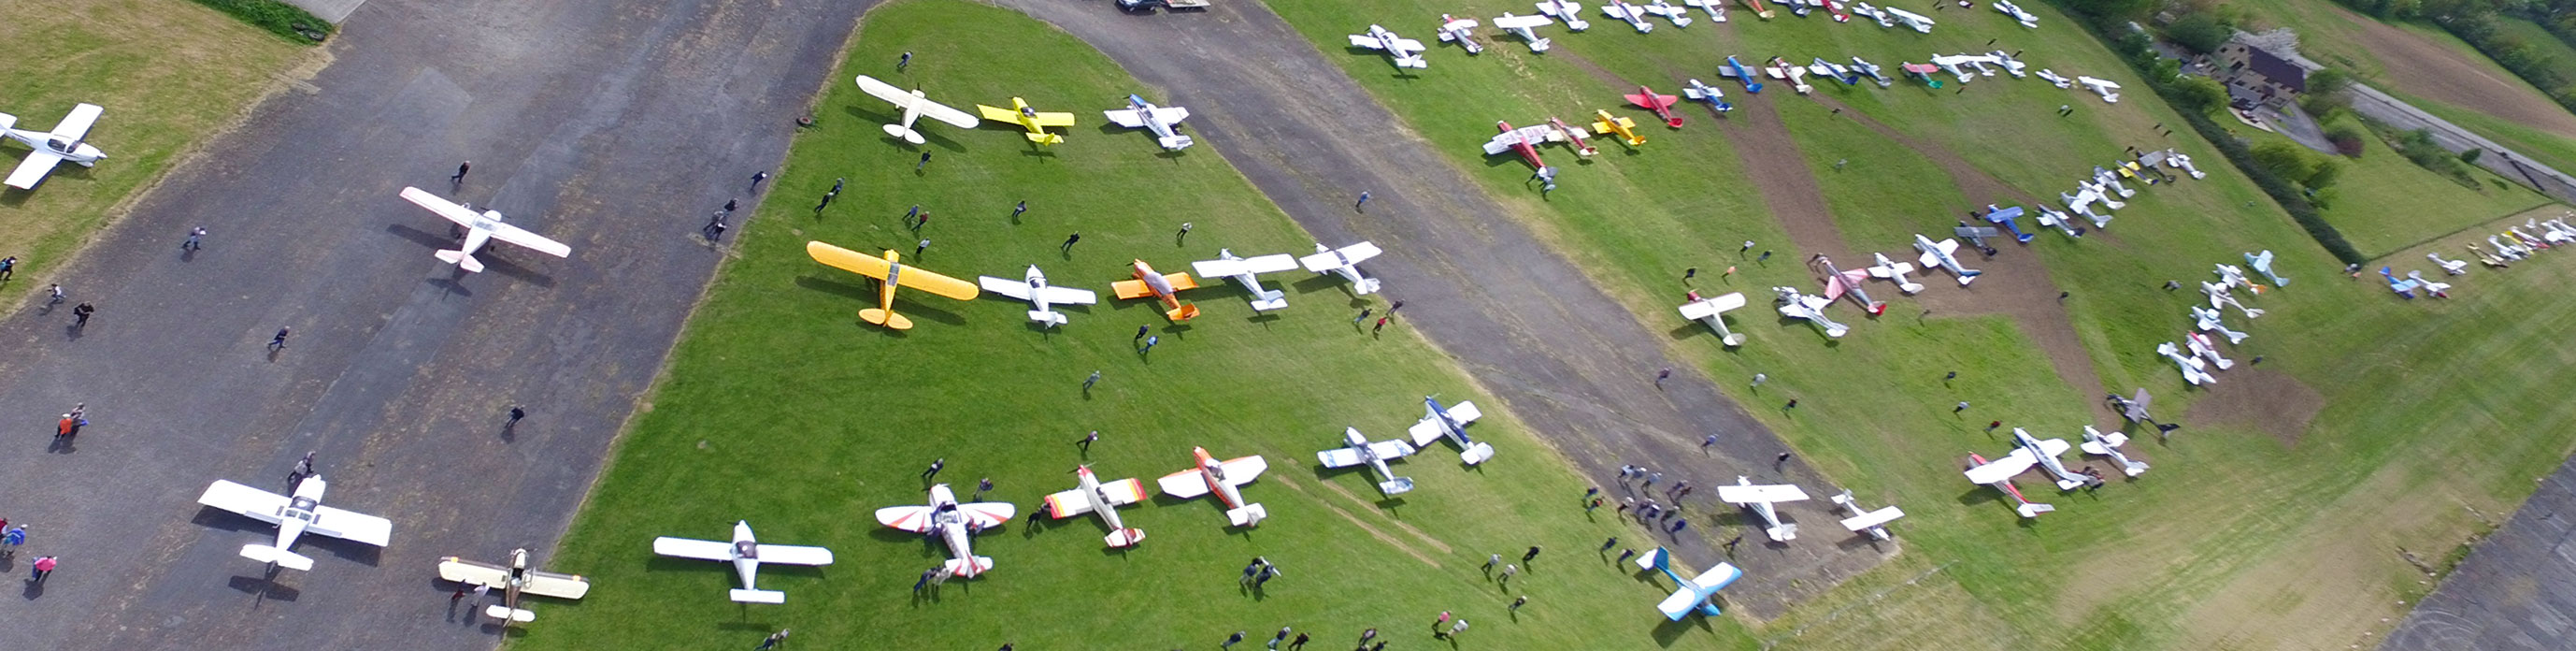 Wessex strut Annual fly-in April 2017 - aerial picture of aircraft parked on the grass!